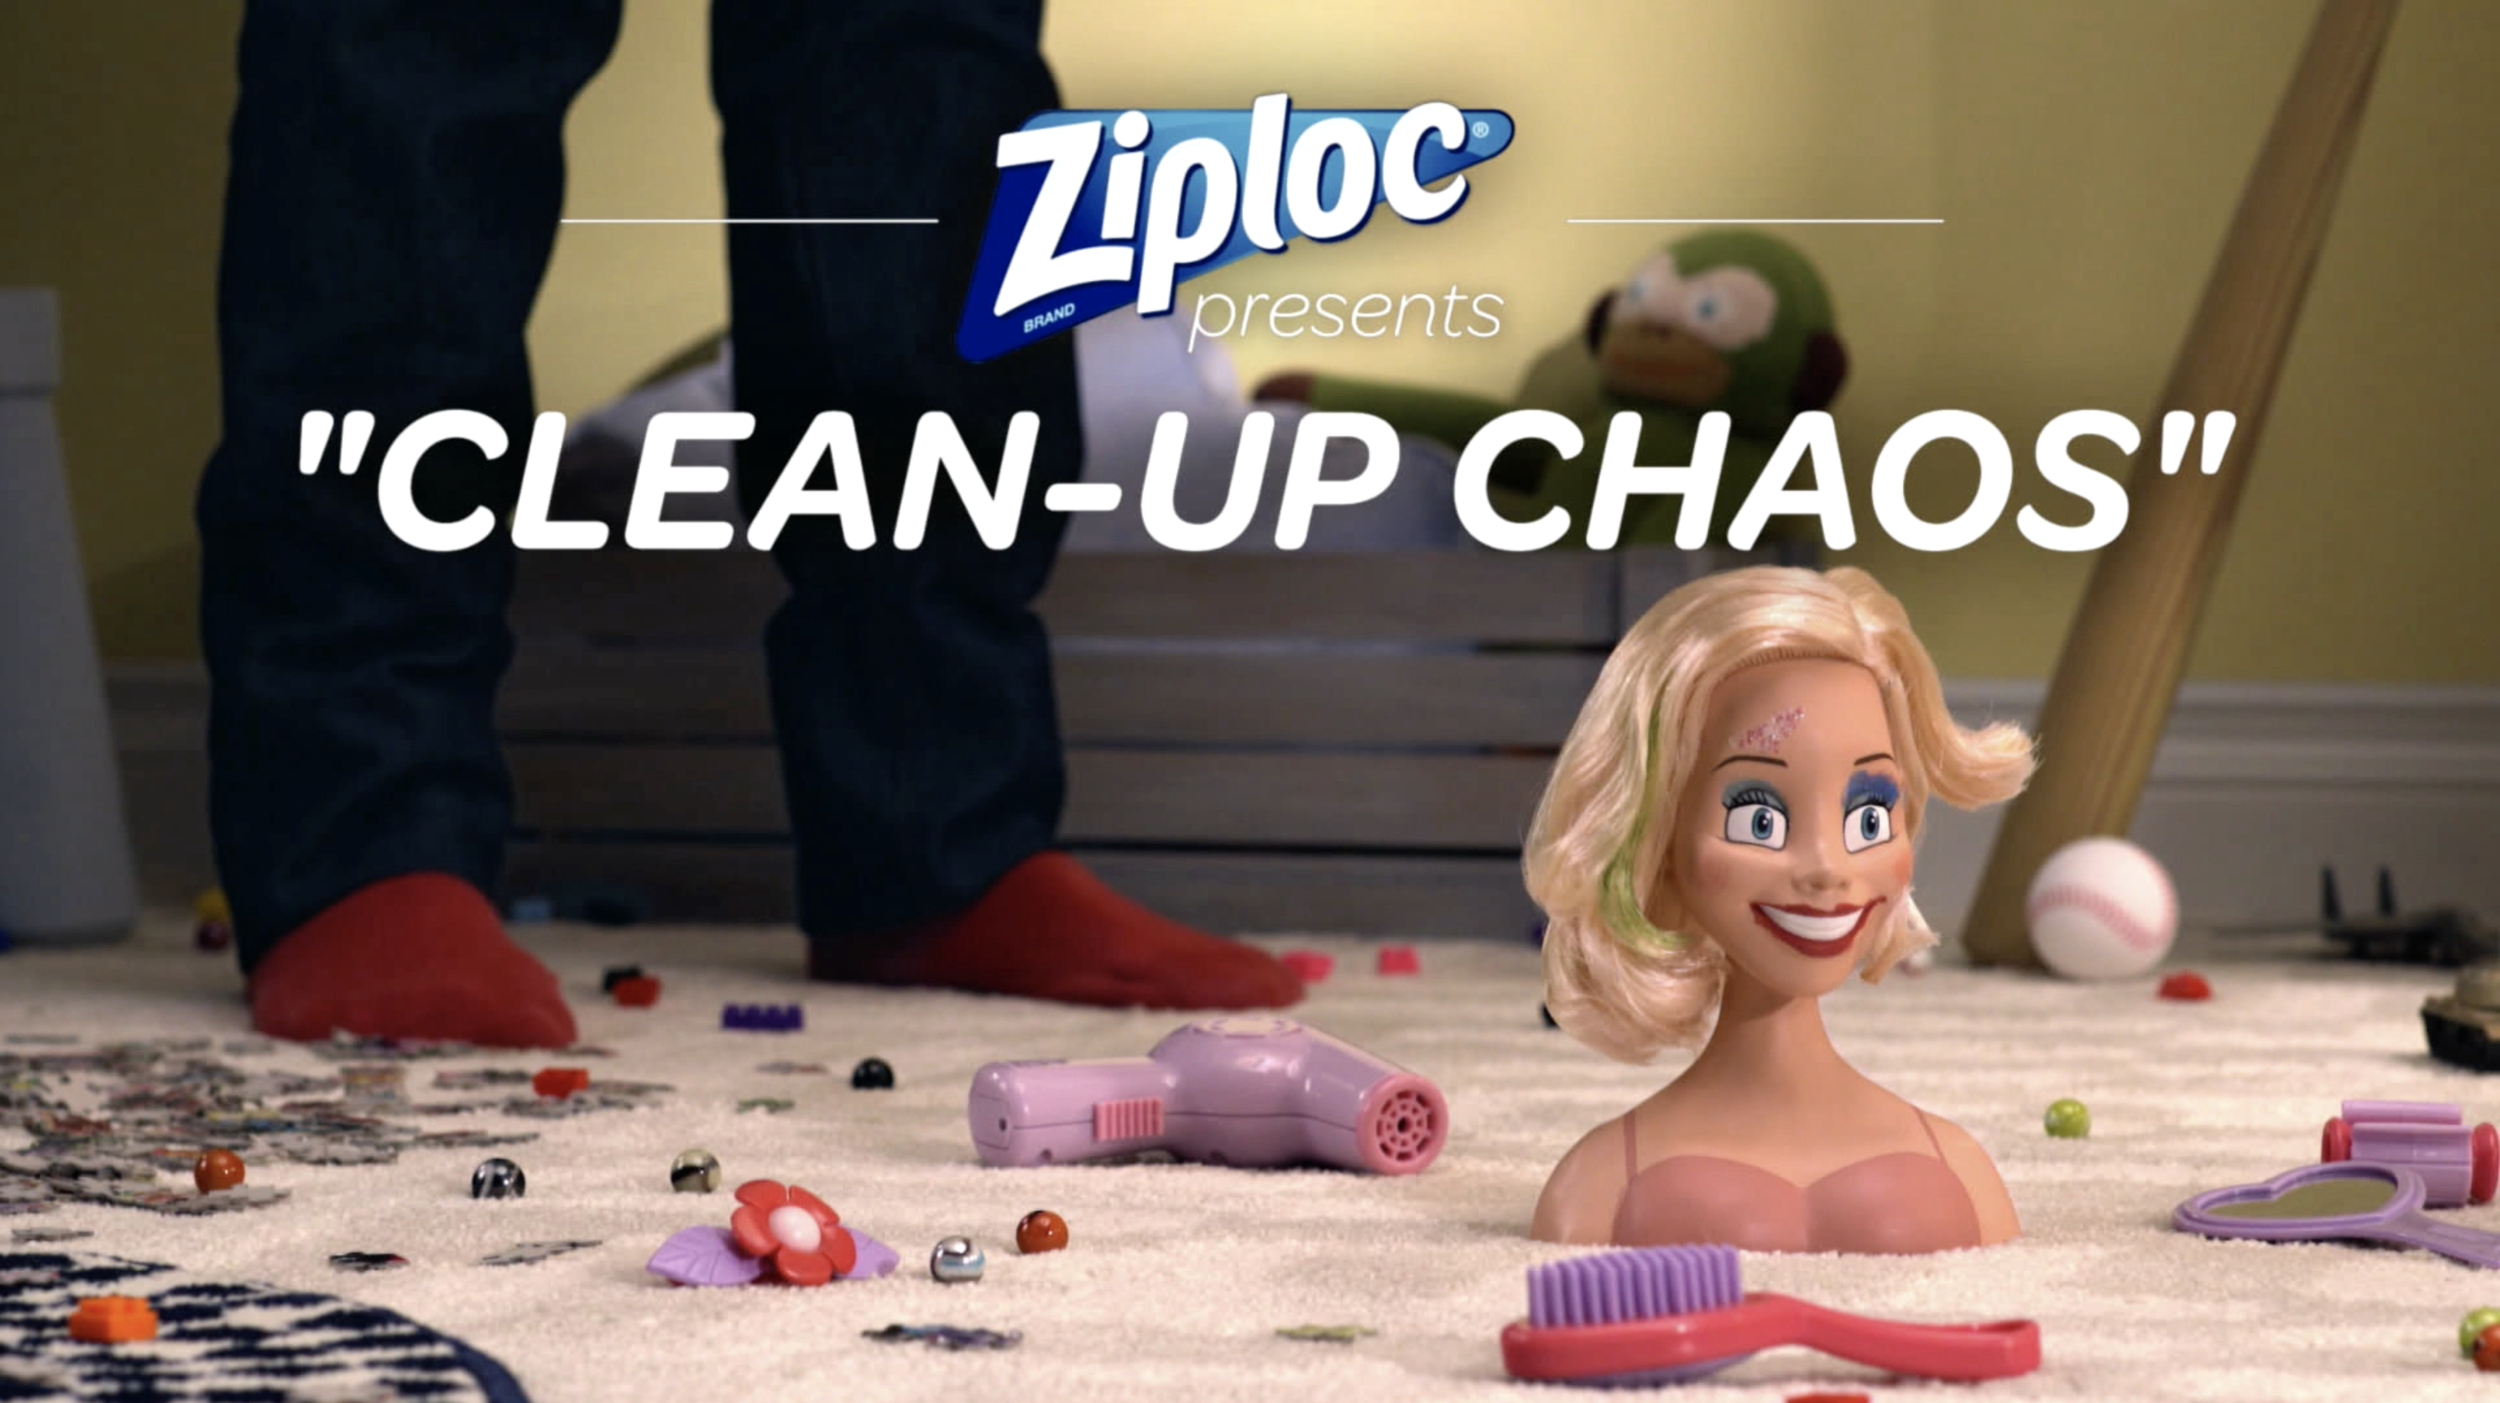 Ziploc Presents: 'Clean-Up Chaos'